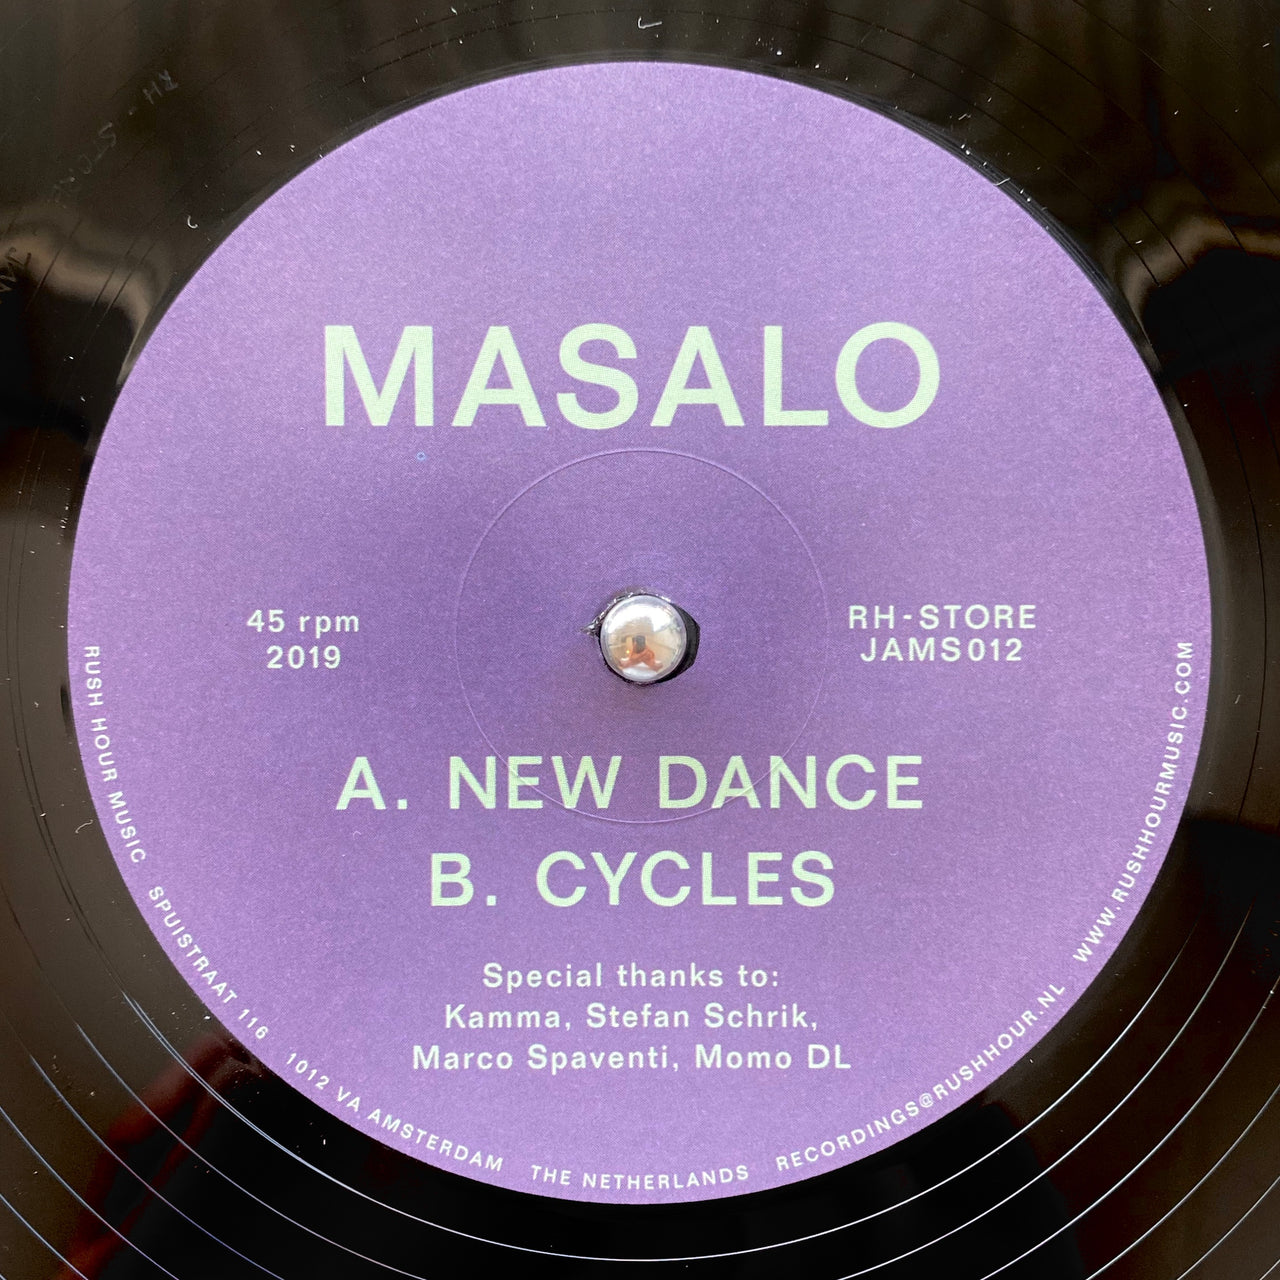 Masalo - New Dance / Cycles